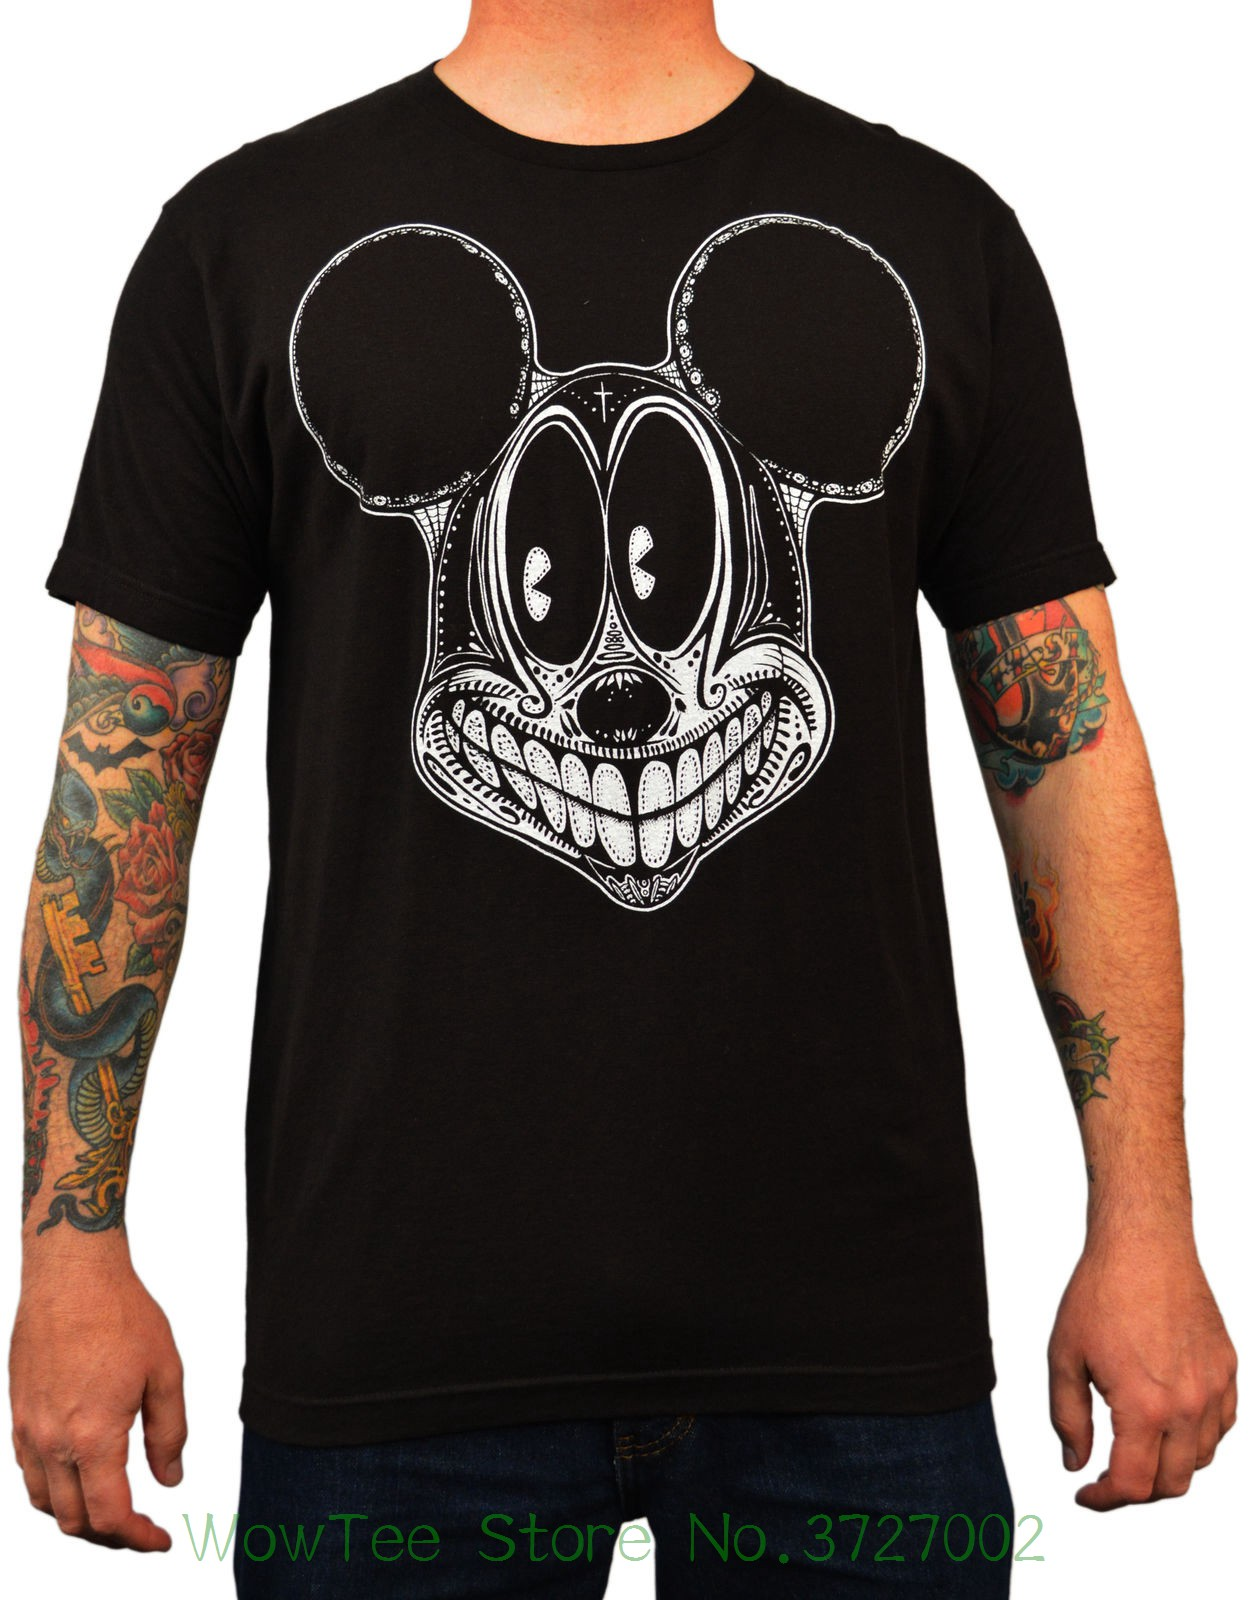 Men's Spooky Mouse By Josh Stebbins Tattoo Art Design T-shirt Black Small Fashion Design Free Shipping